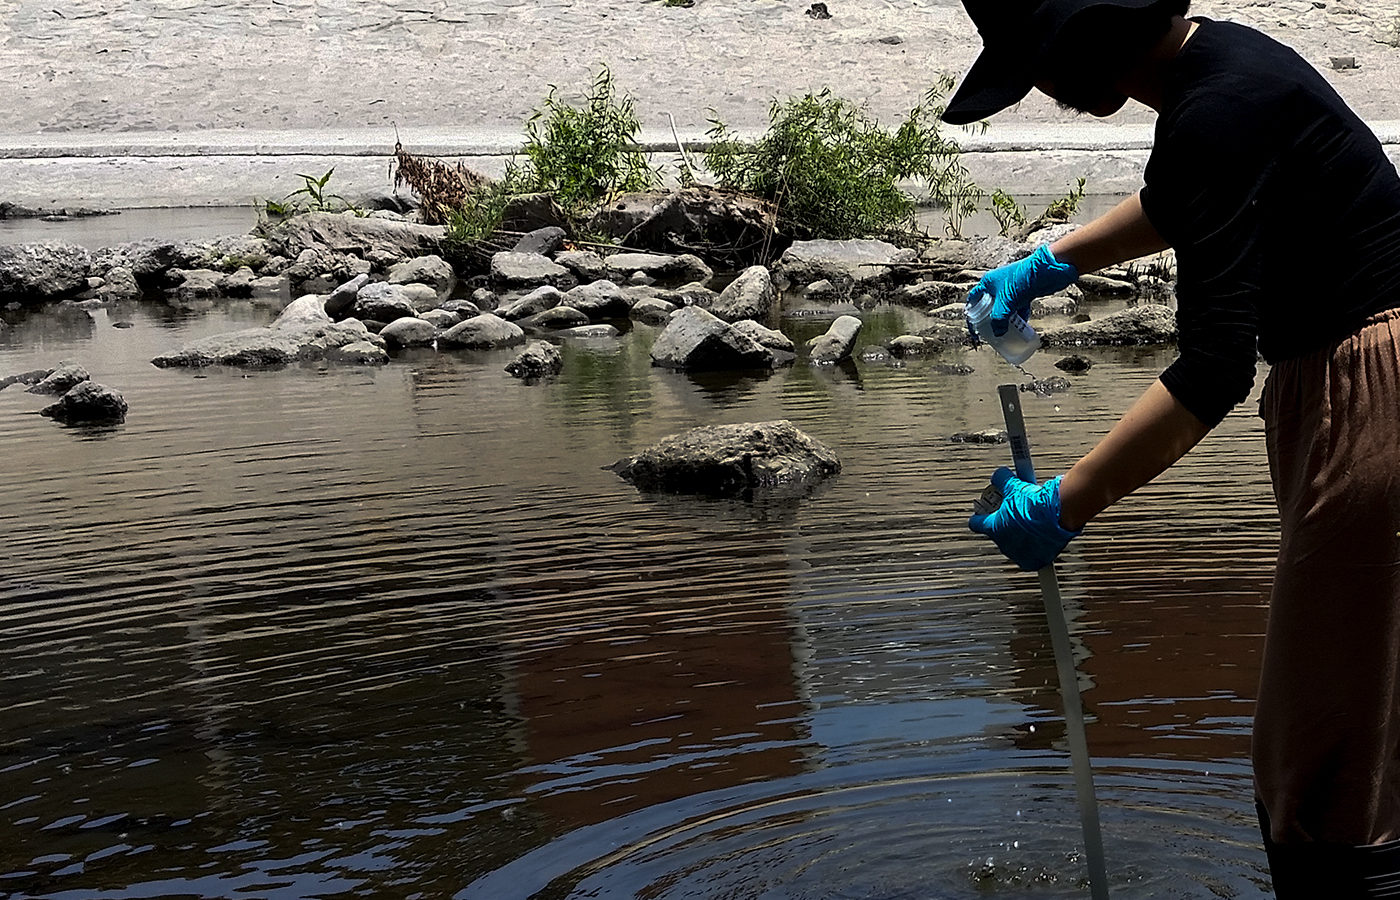 A woman tests the waters in the Los Angeles River.